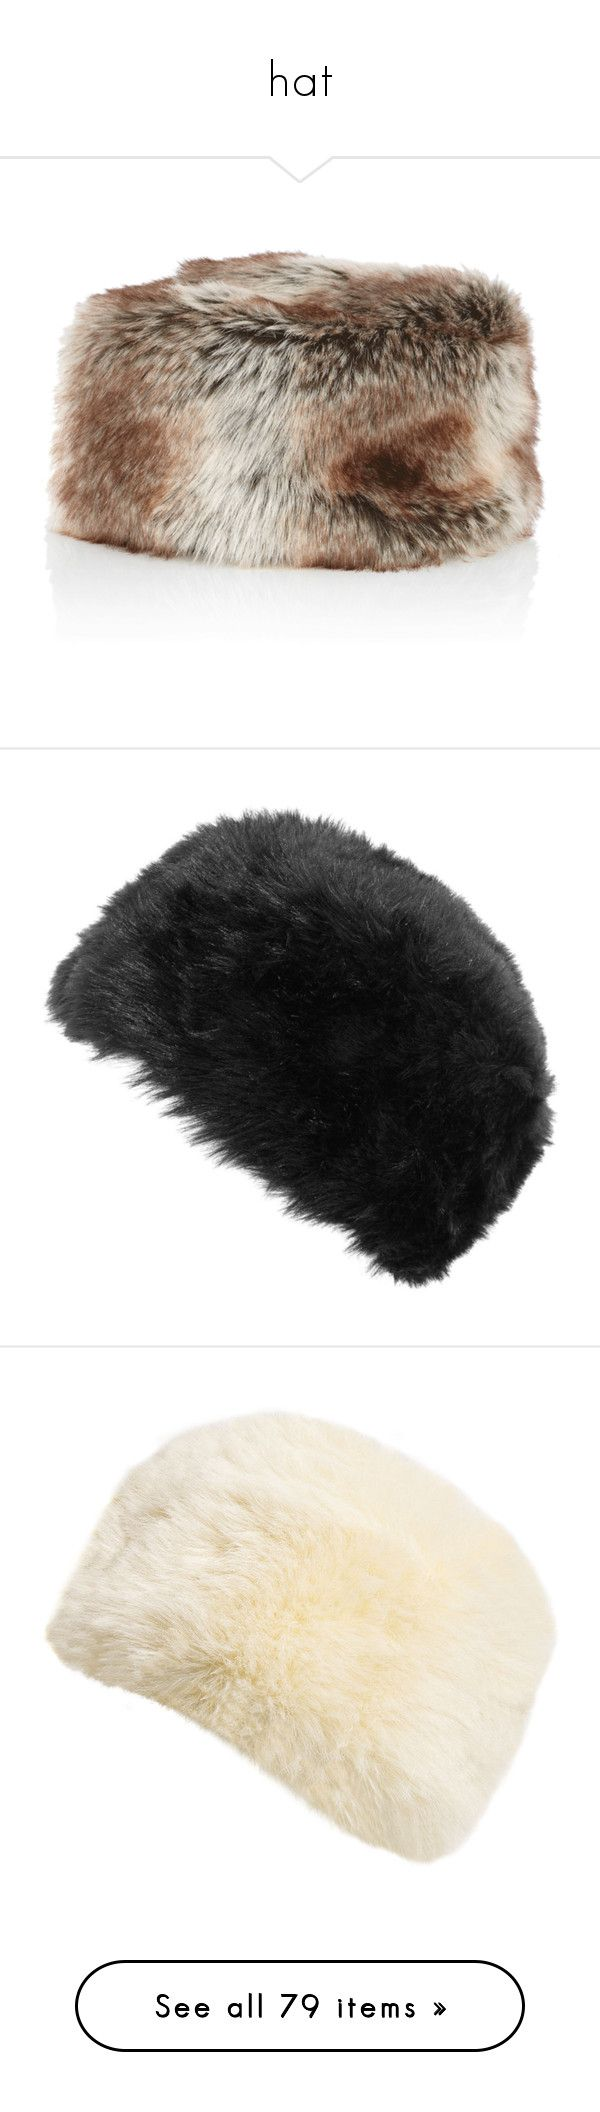 """hat"" by joycebicht ❤ liked on Polyvore featuring accessories, hats, faux-fur hat, fake fur hats, rabbit hat, rabbit fur hat, faux fur hat, fur, headwear and women"